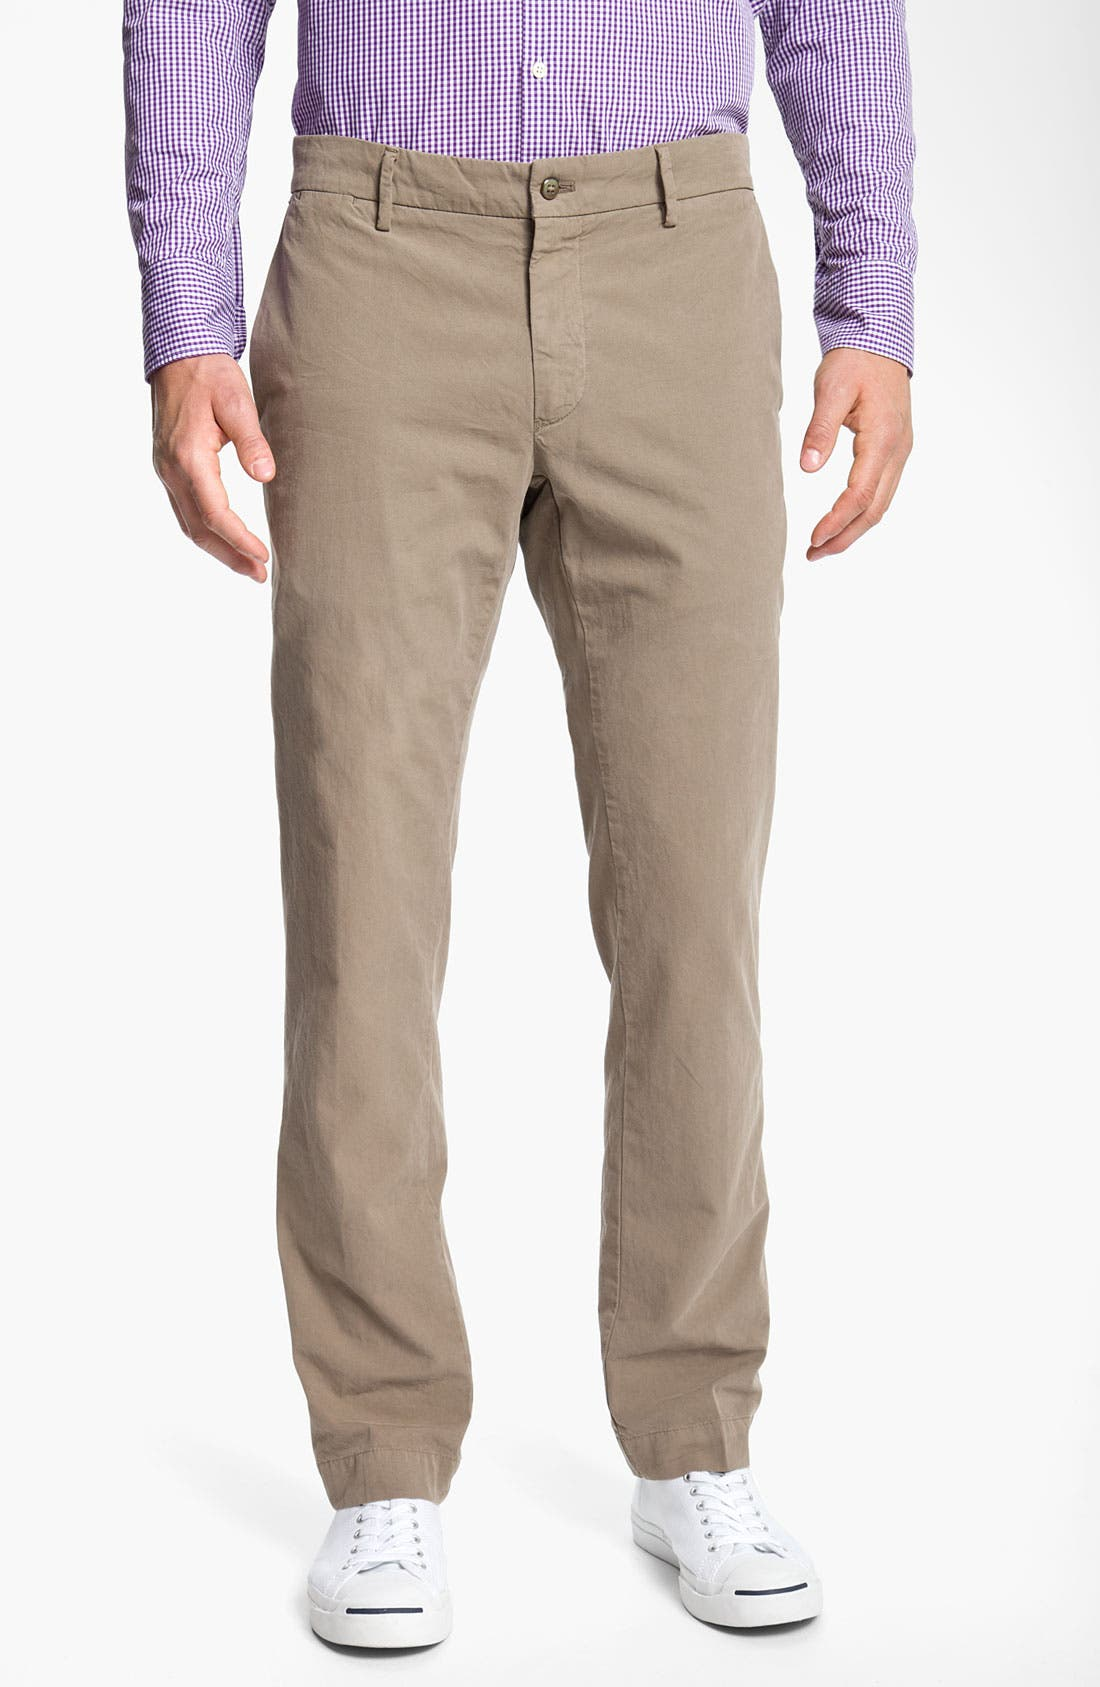 Main Image - Mason's Flat Front Slim Leg Cotton Pants